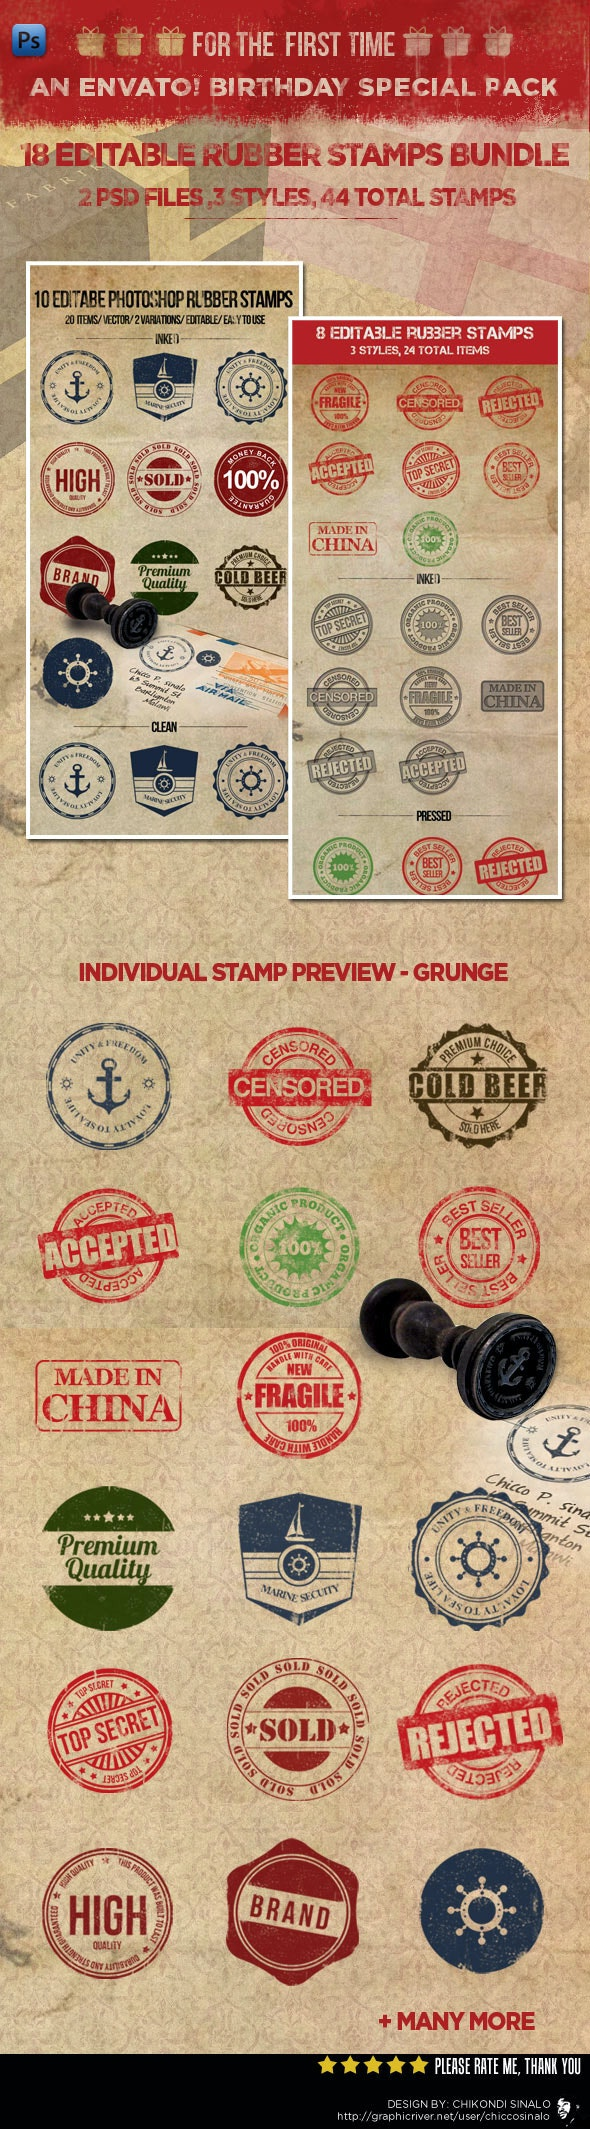 18 Editable Rubber Stamps Bundle - Photoshop Add-ons